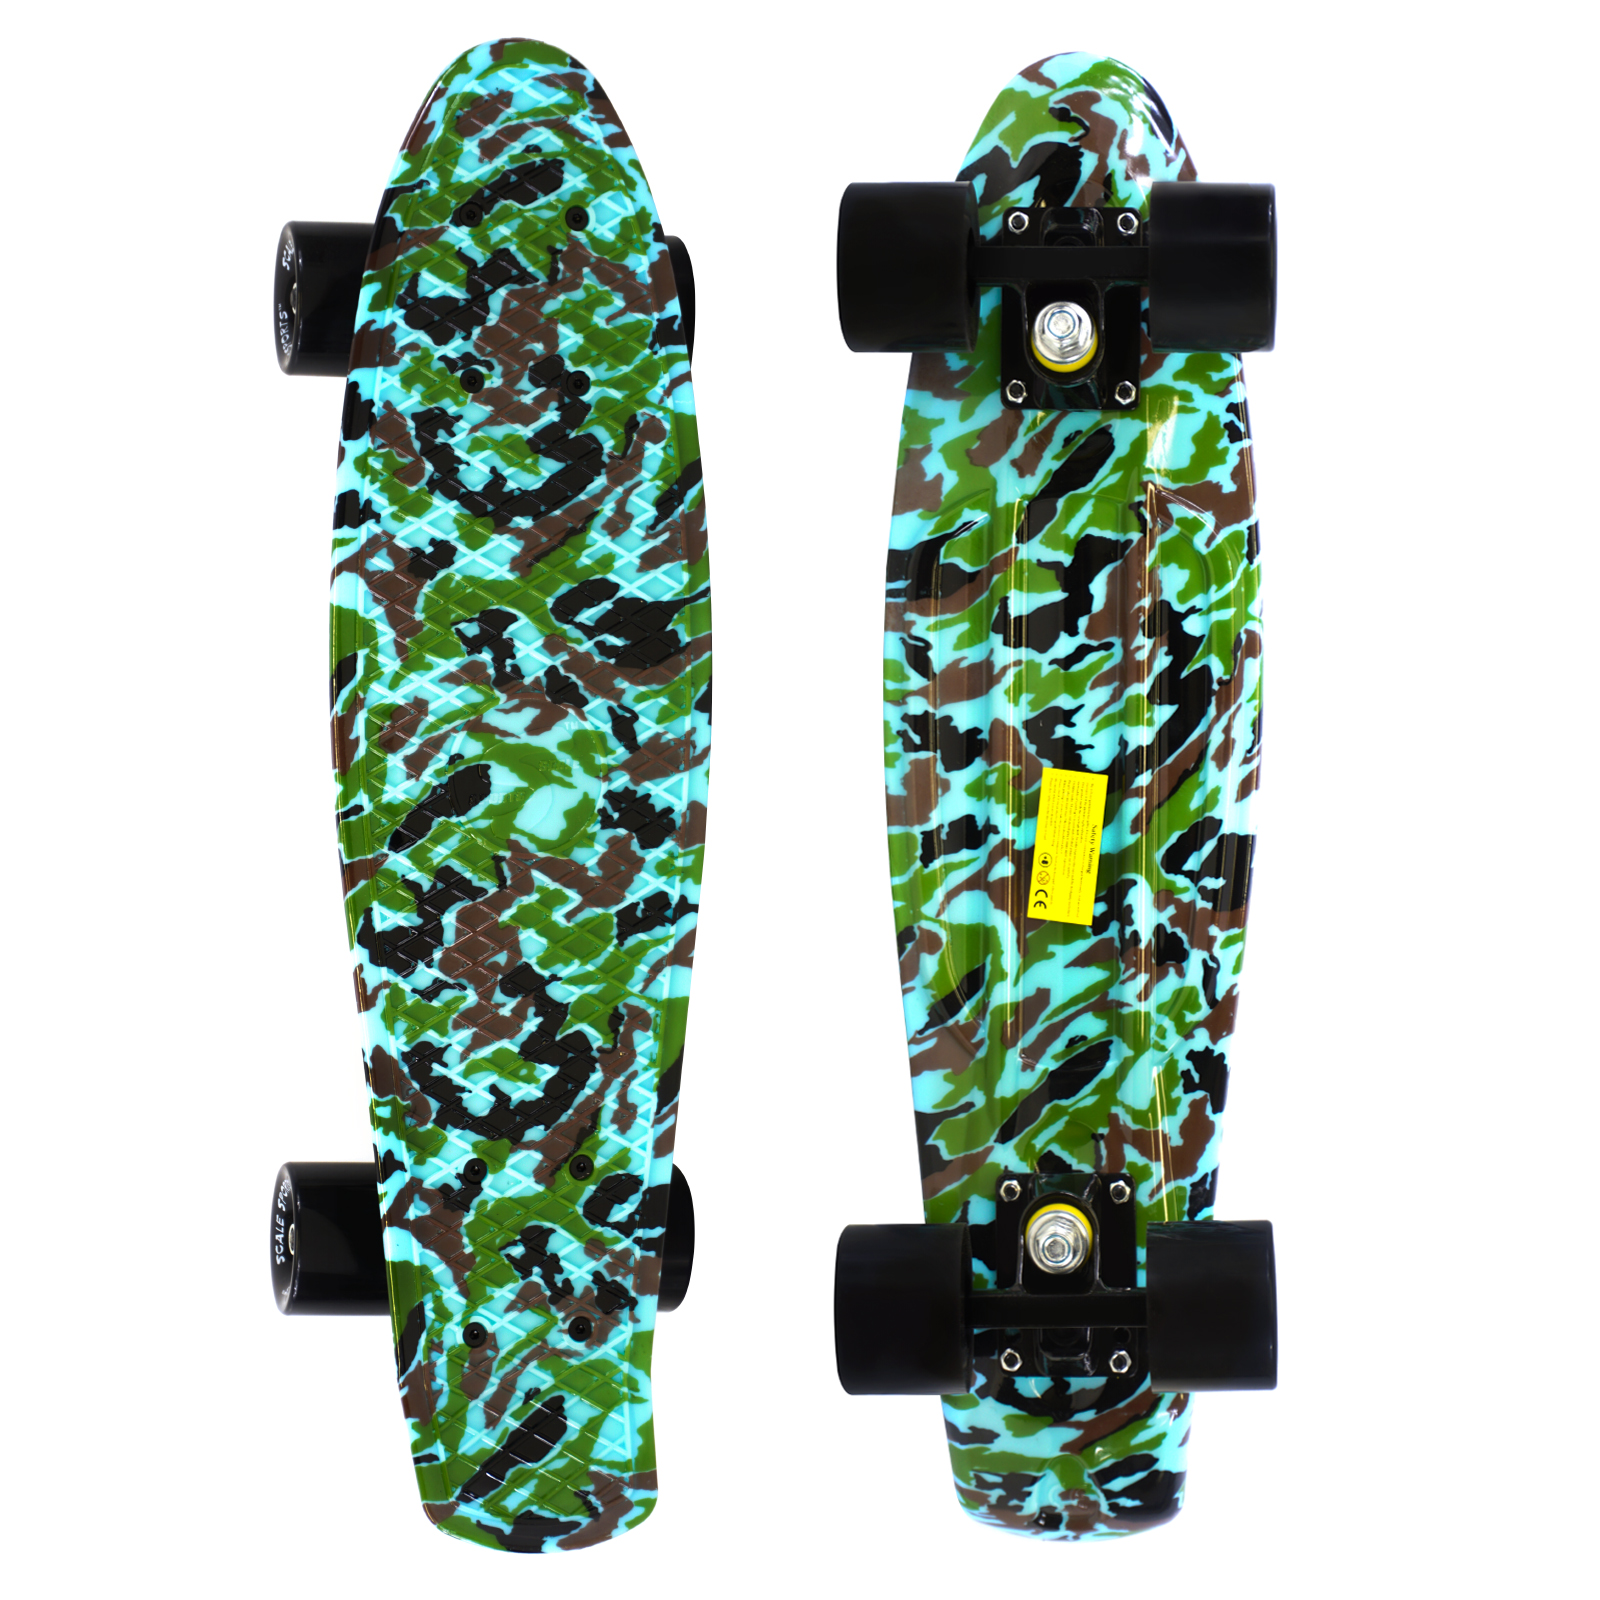 27 Skateboard Complete Street Retro Cruiser Budda Print Deck by Scale Sports